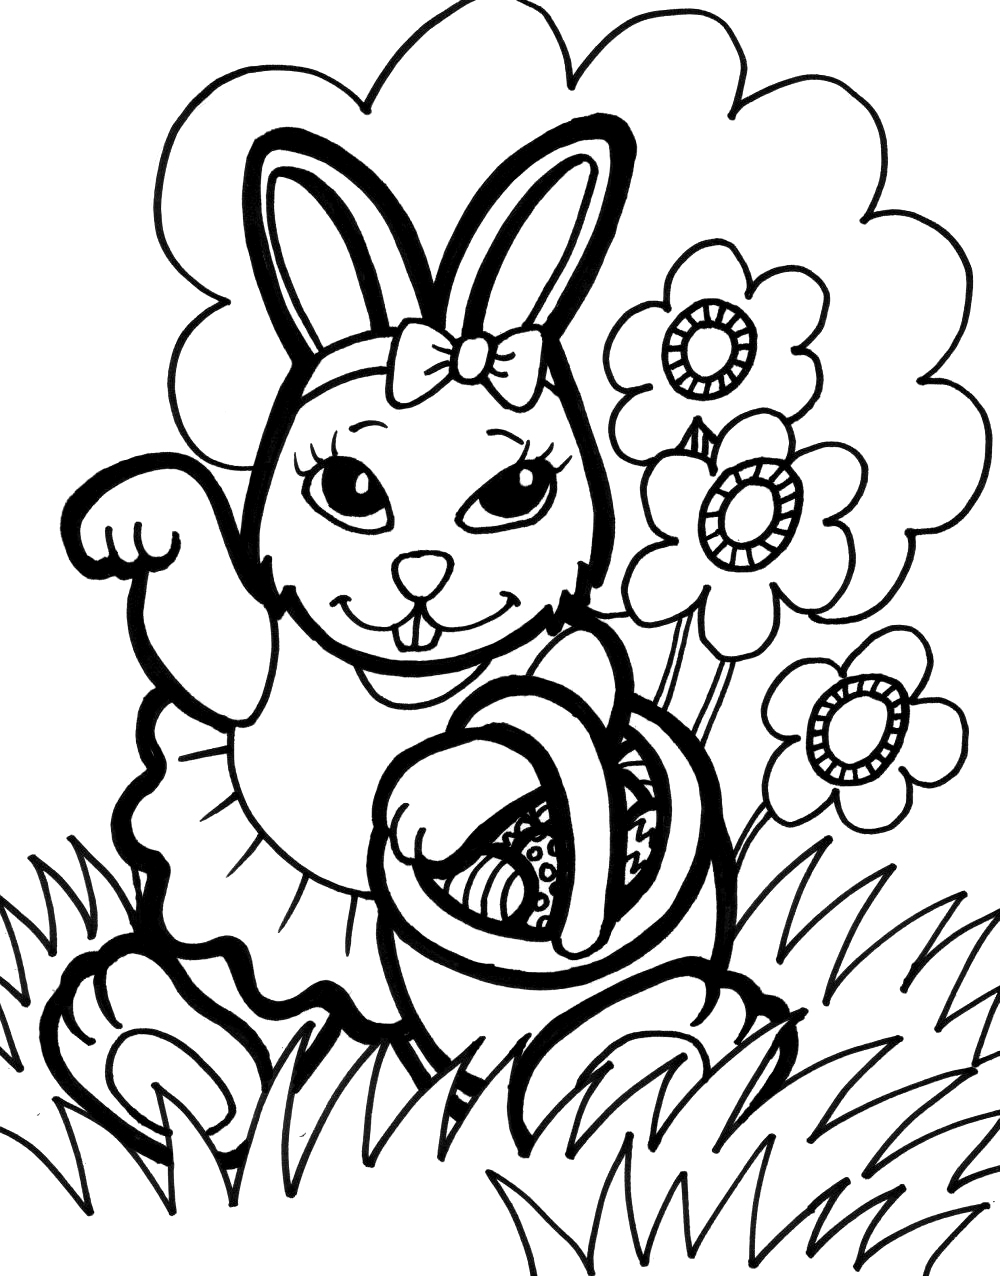 bunny coloring pictures 60 rabbit shape templates and crafts colouring pages coloring pictures bunny